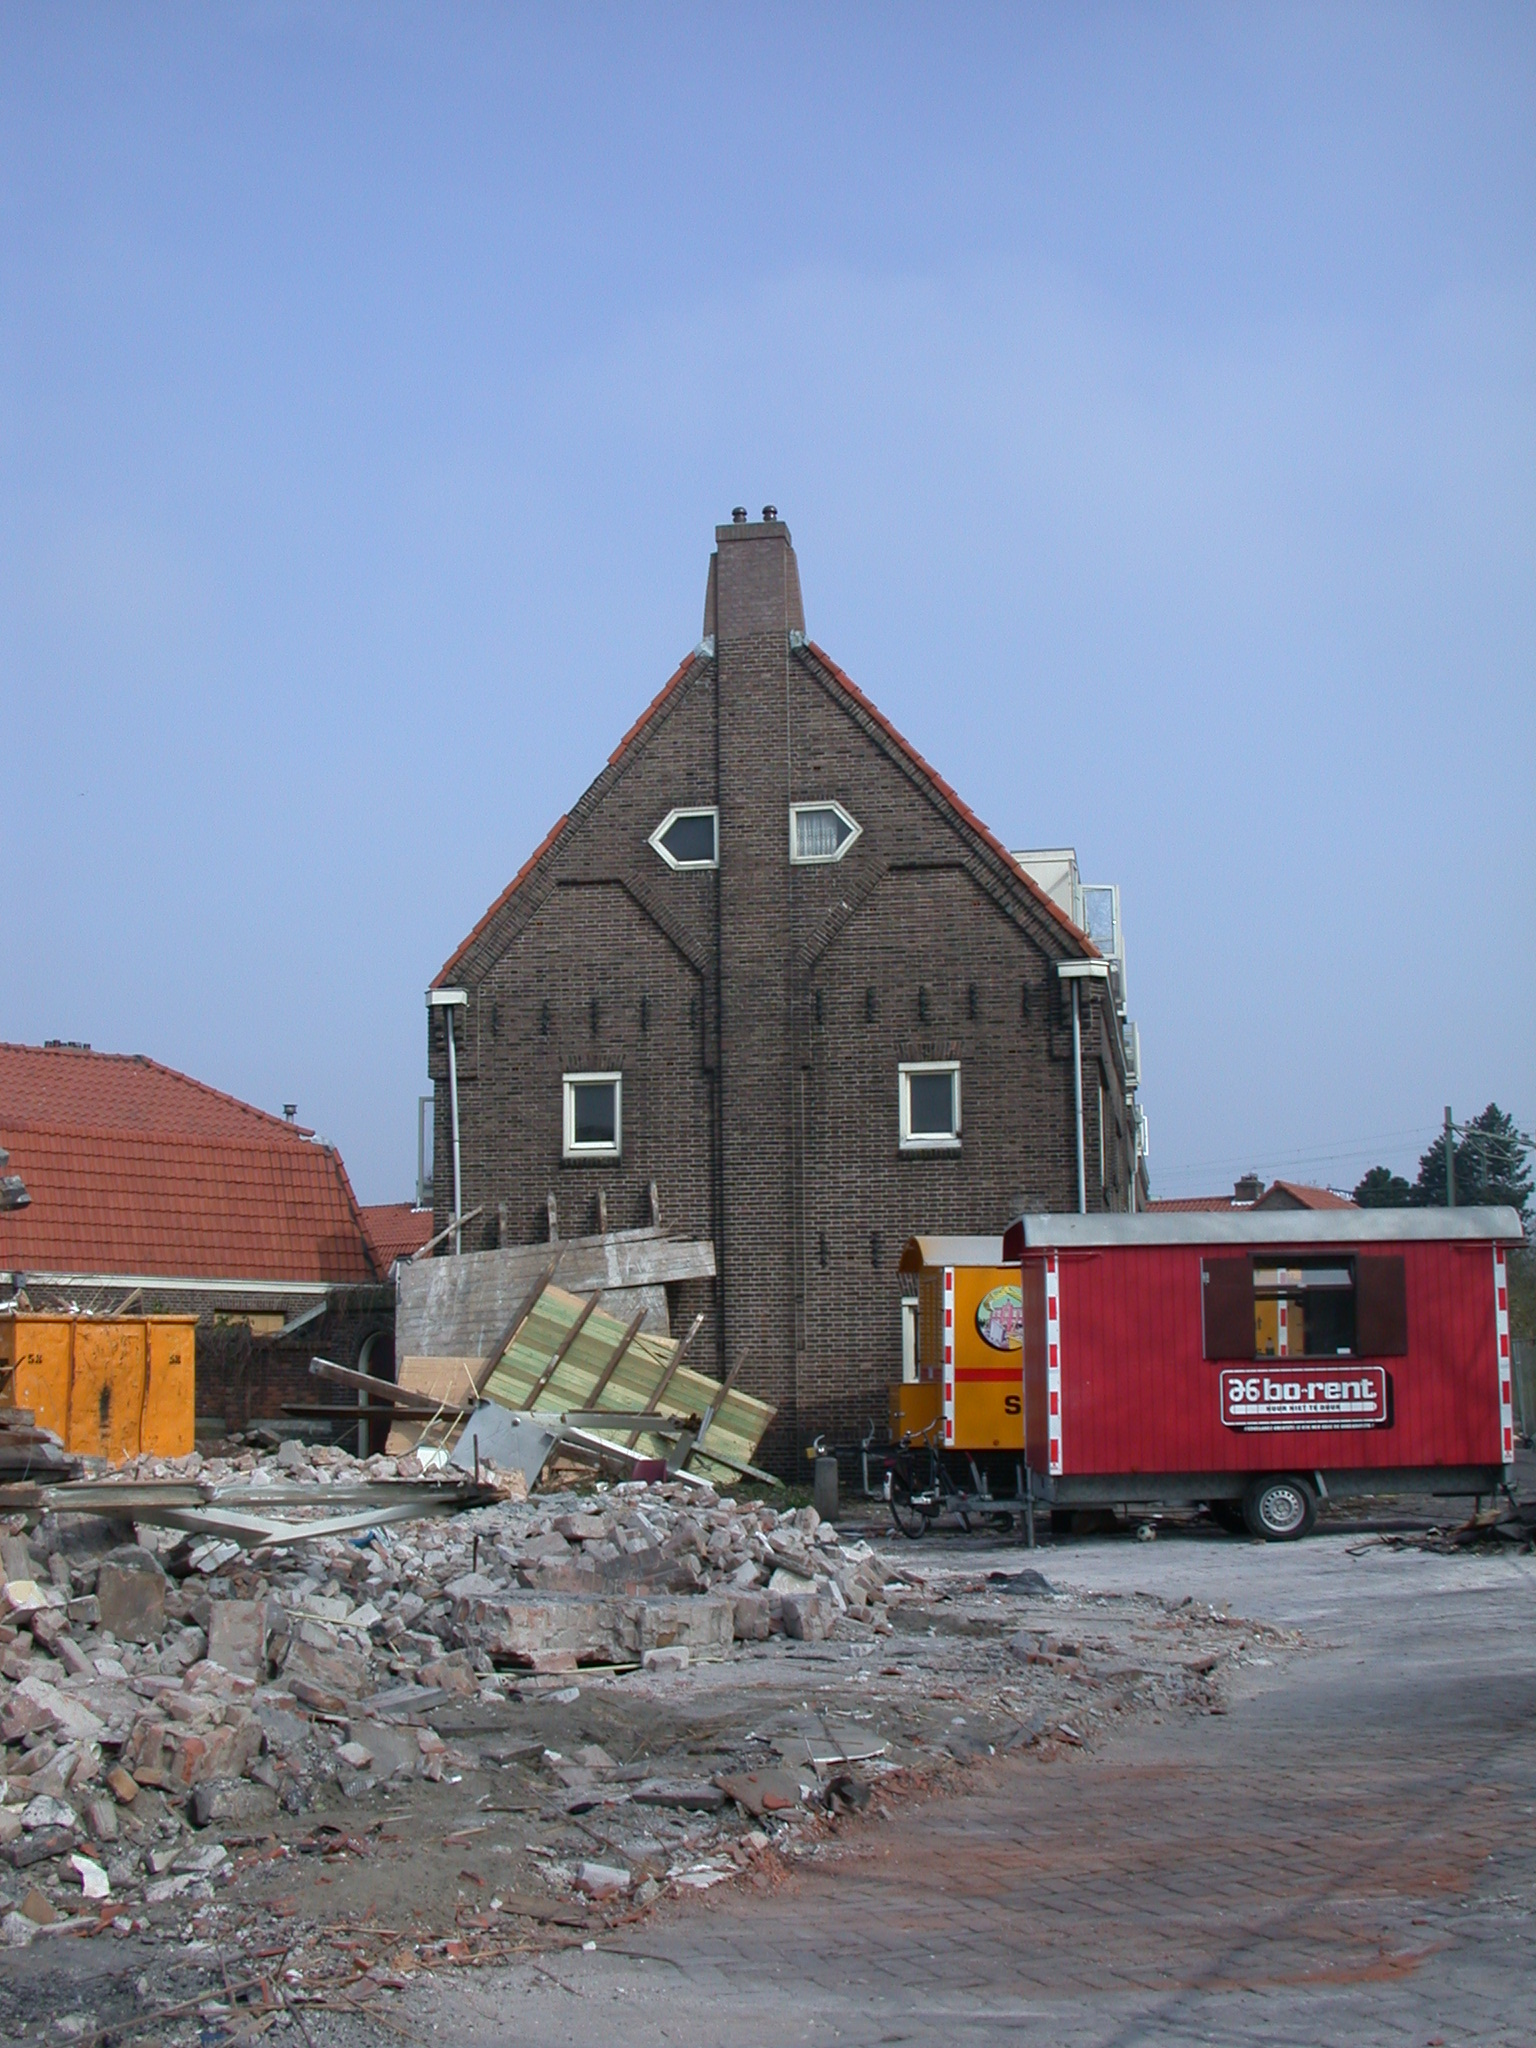 architecture exteriors cityscape house houses neighbourhood demolition